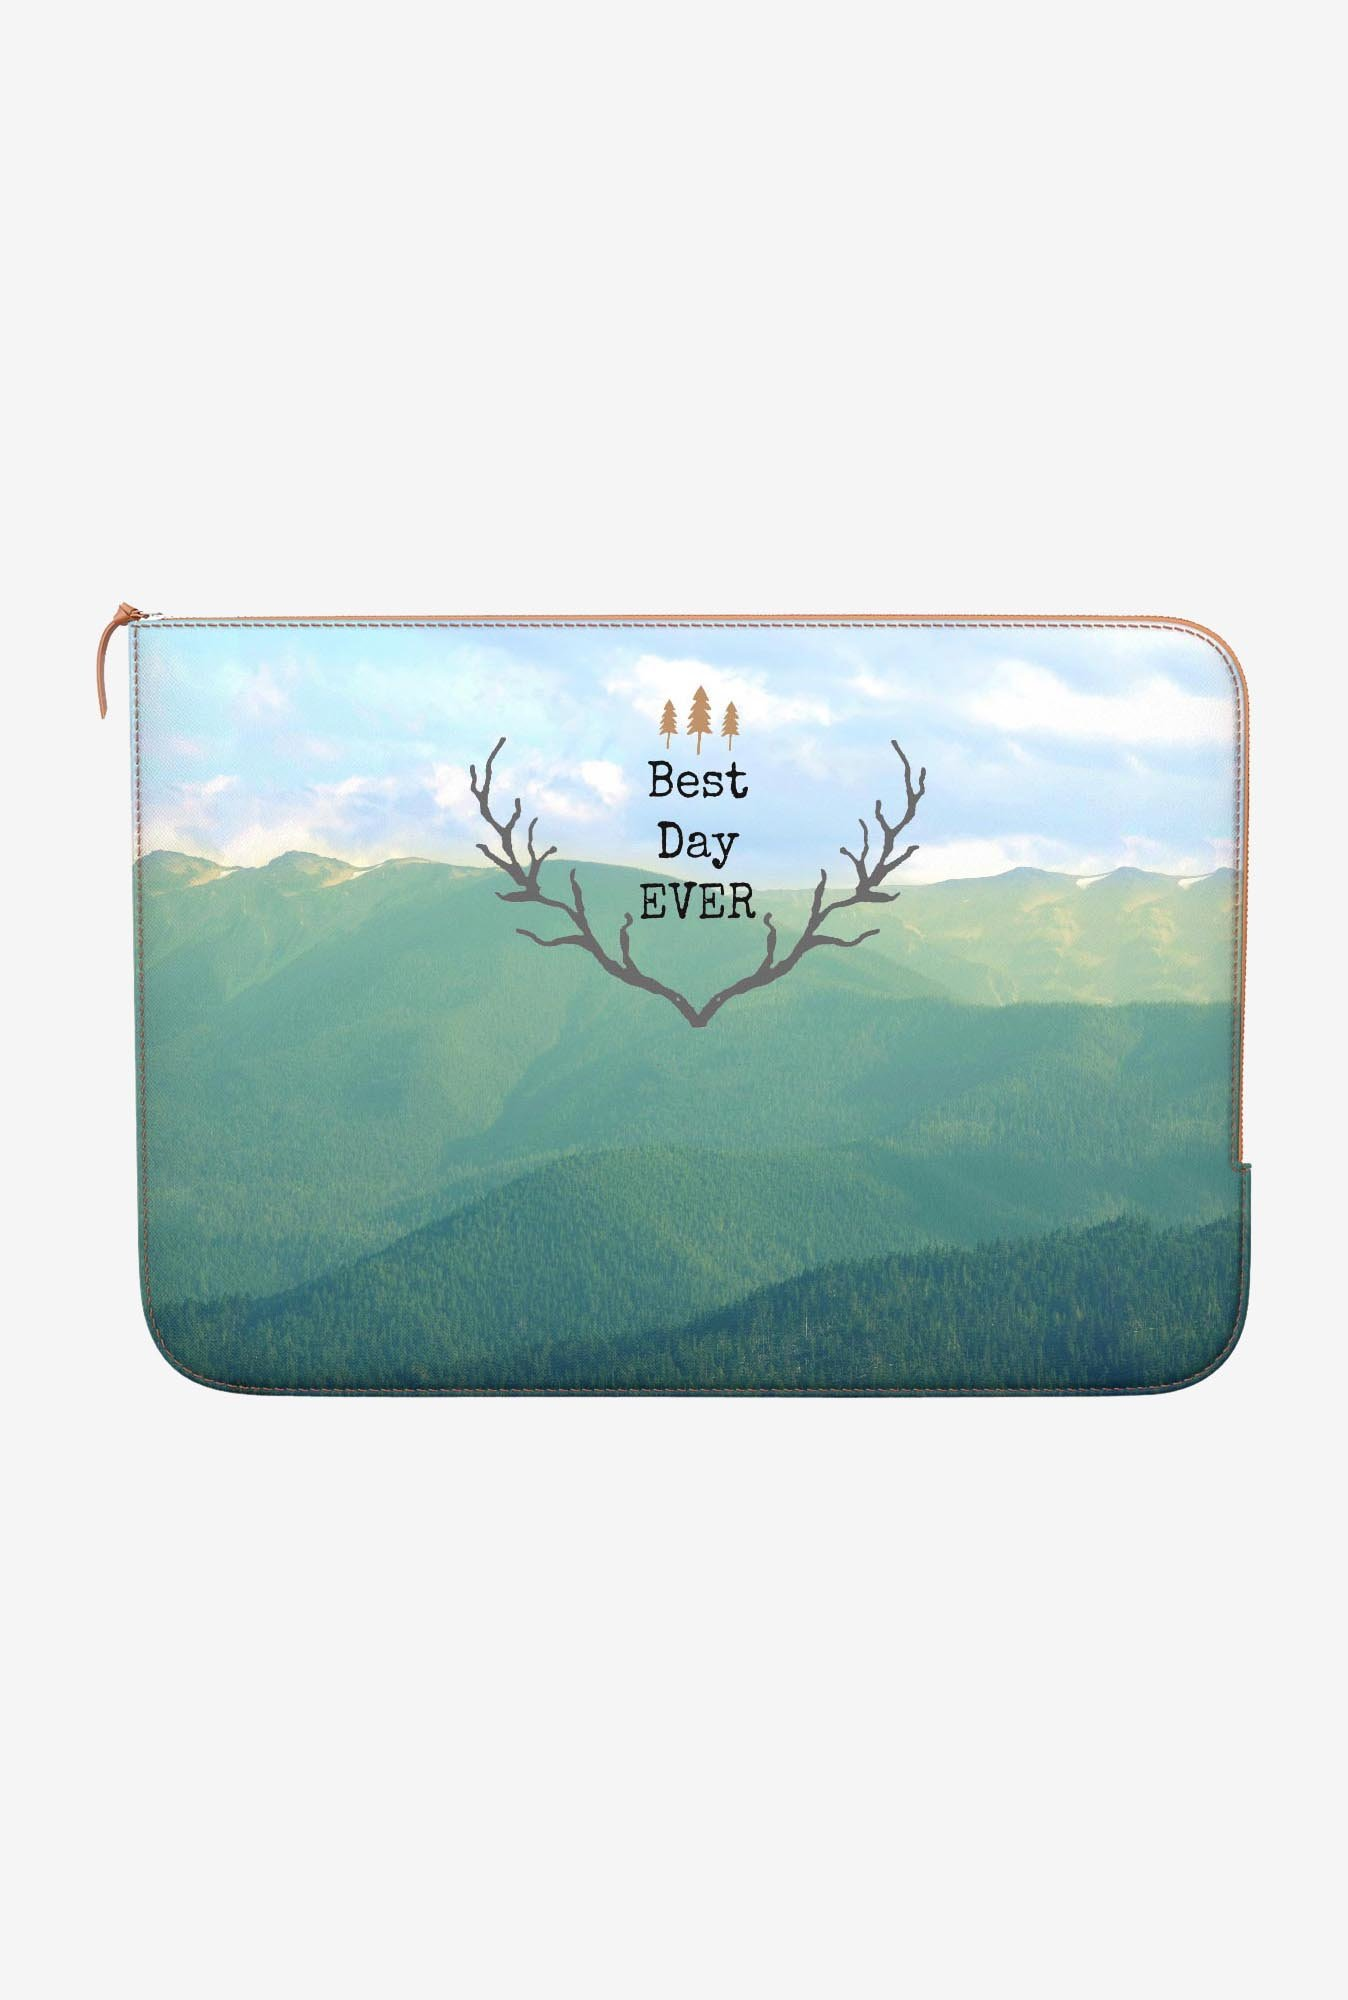 DailyObjects Best Day Ever MacBook Air 11 Zippered Sleeve